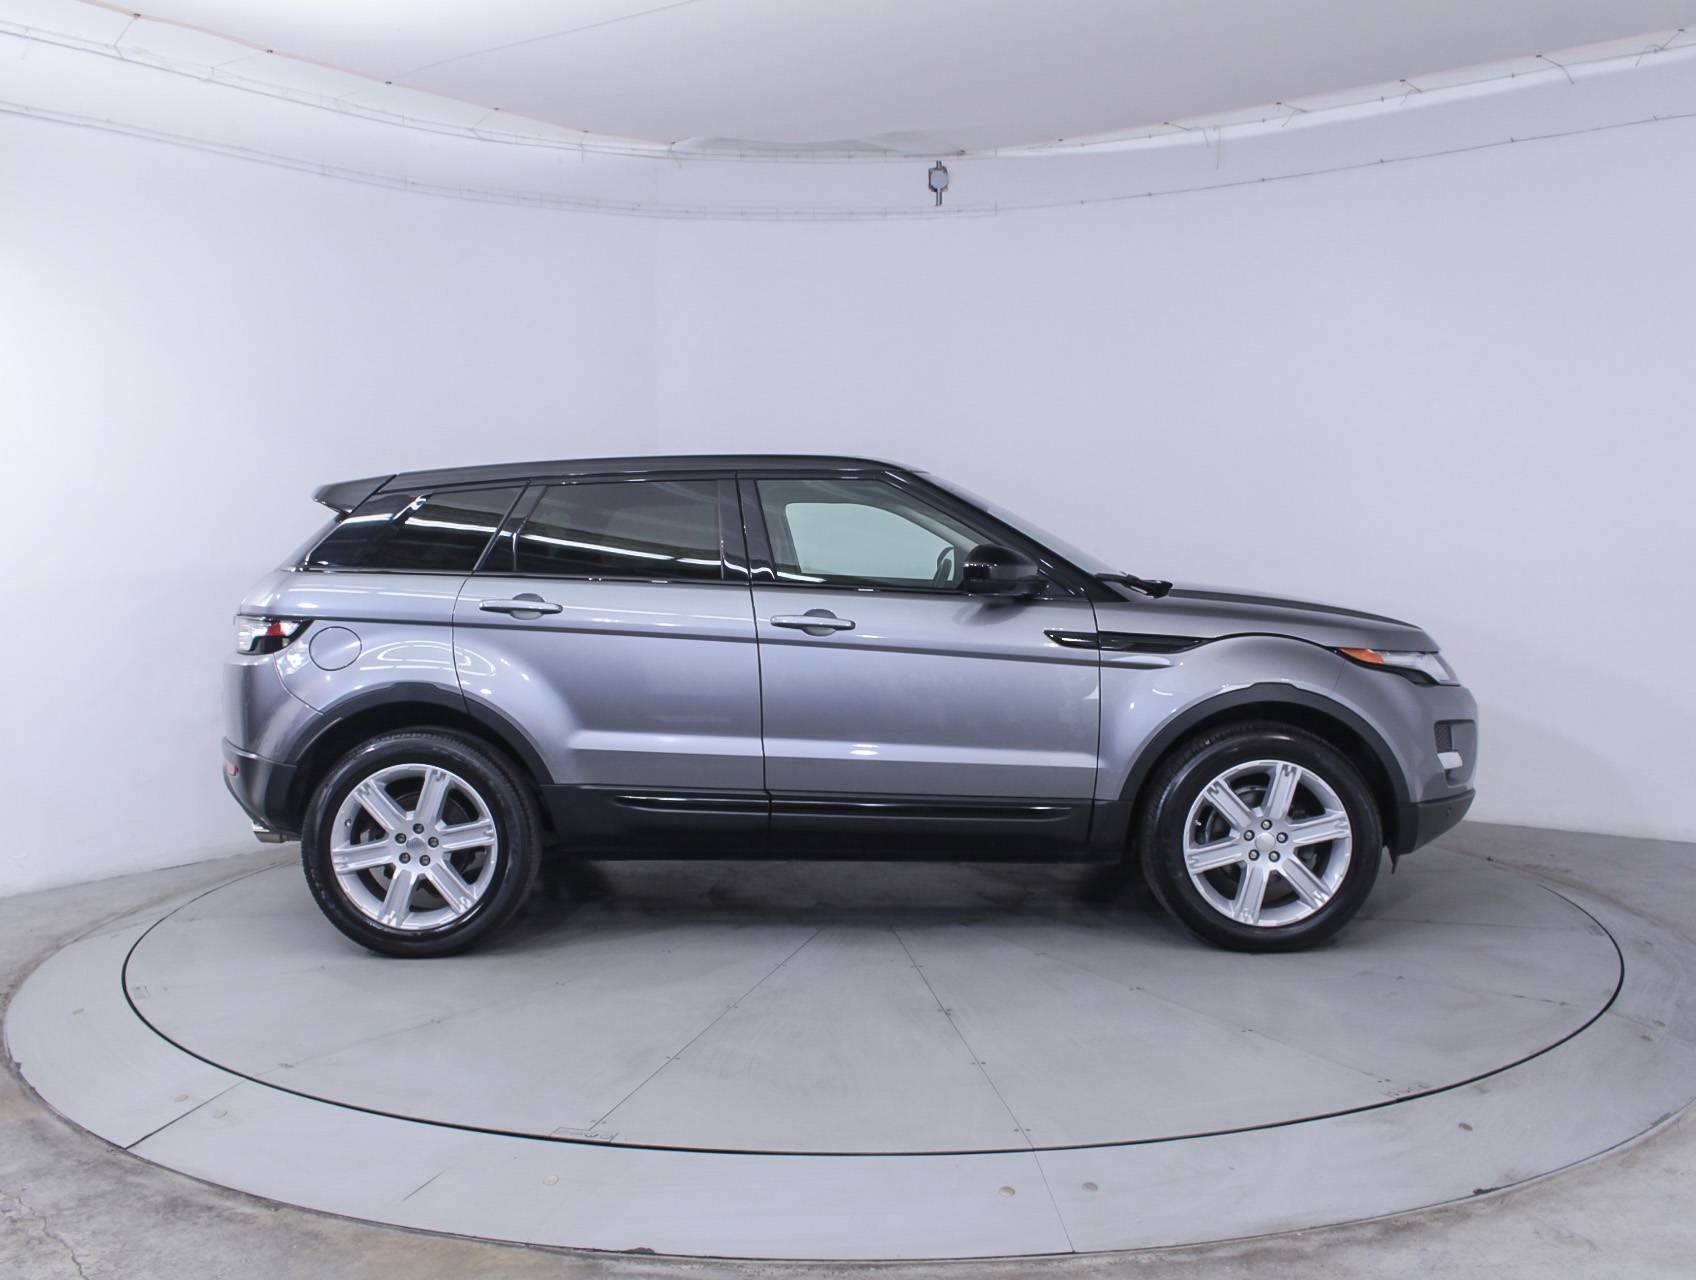 florida plus fl for used rover west sale palm carsforsale suv in land landrover cars fine evoque stock pure range